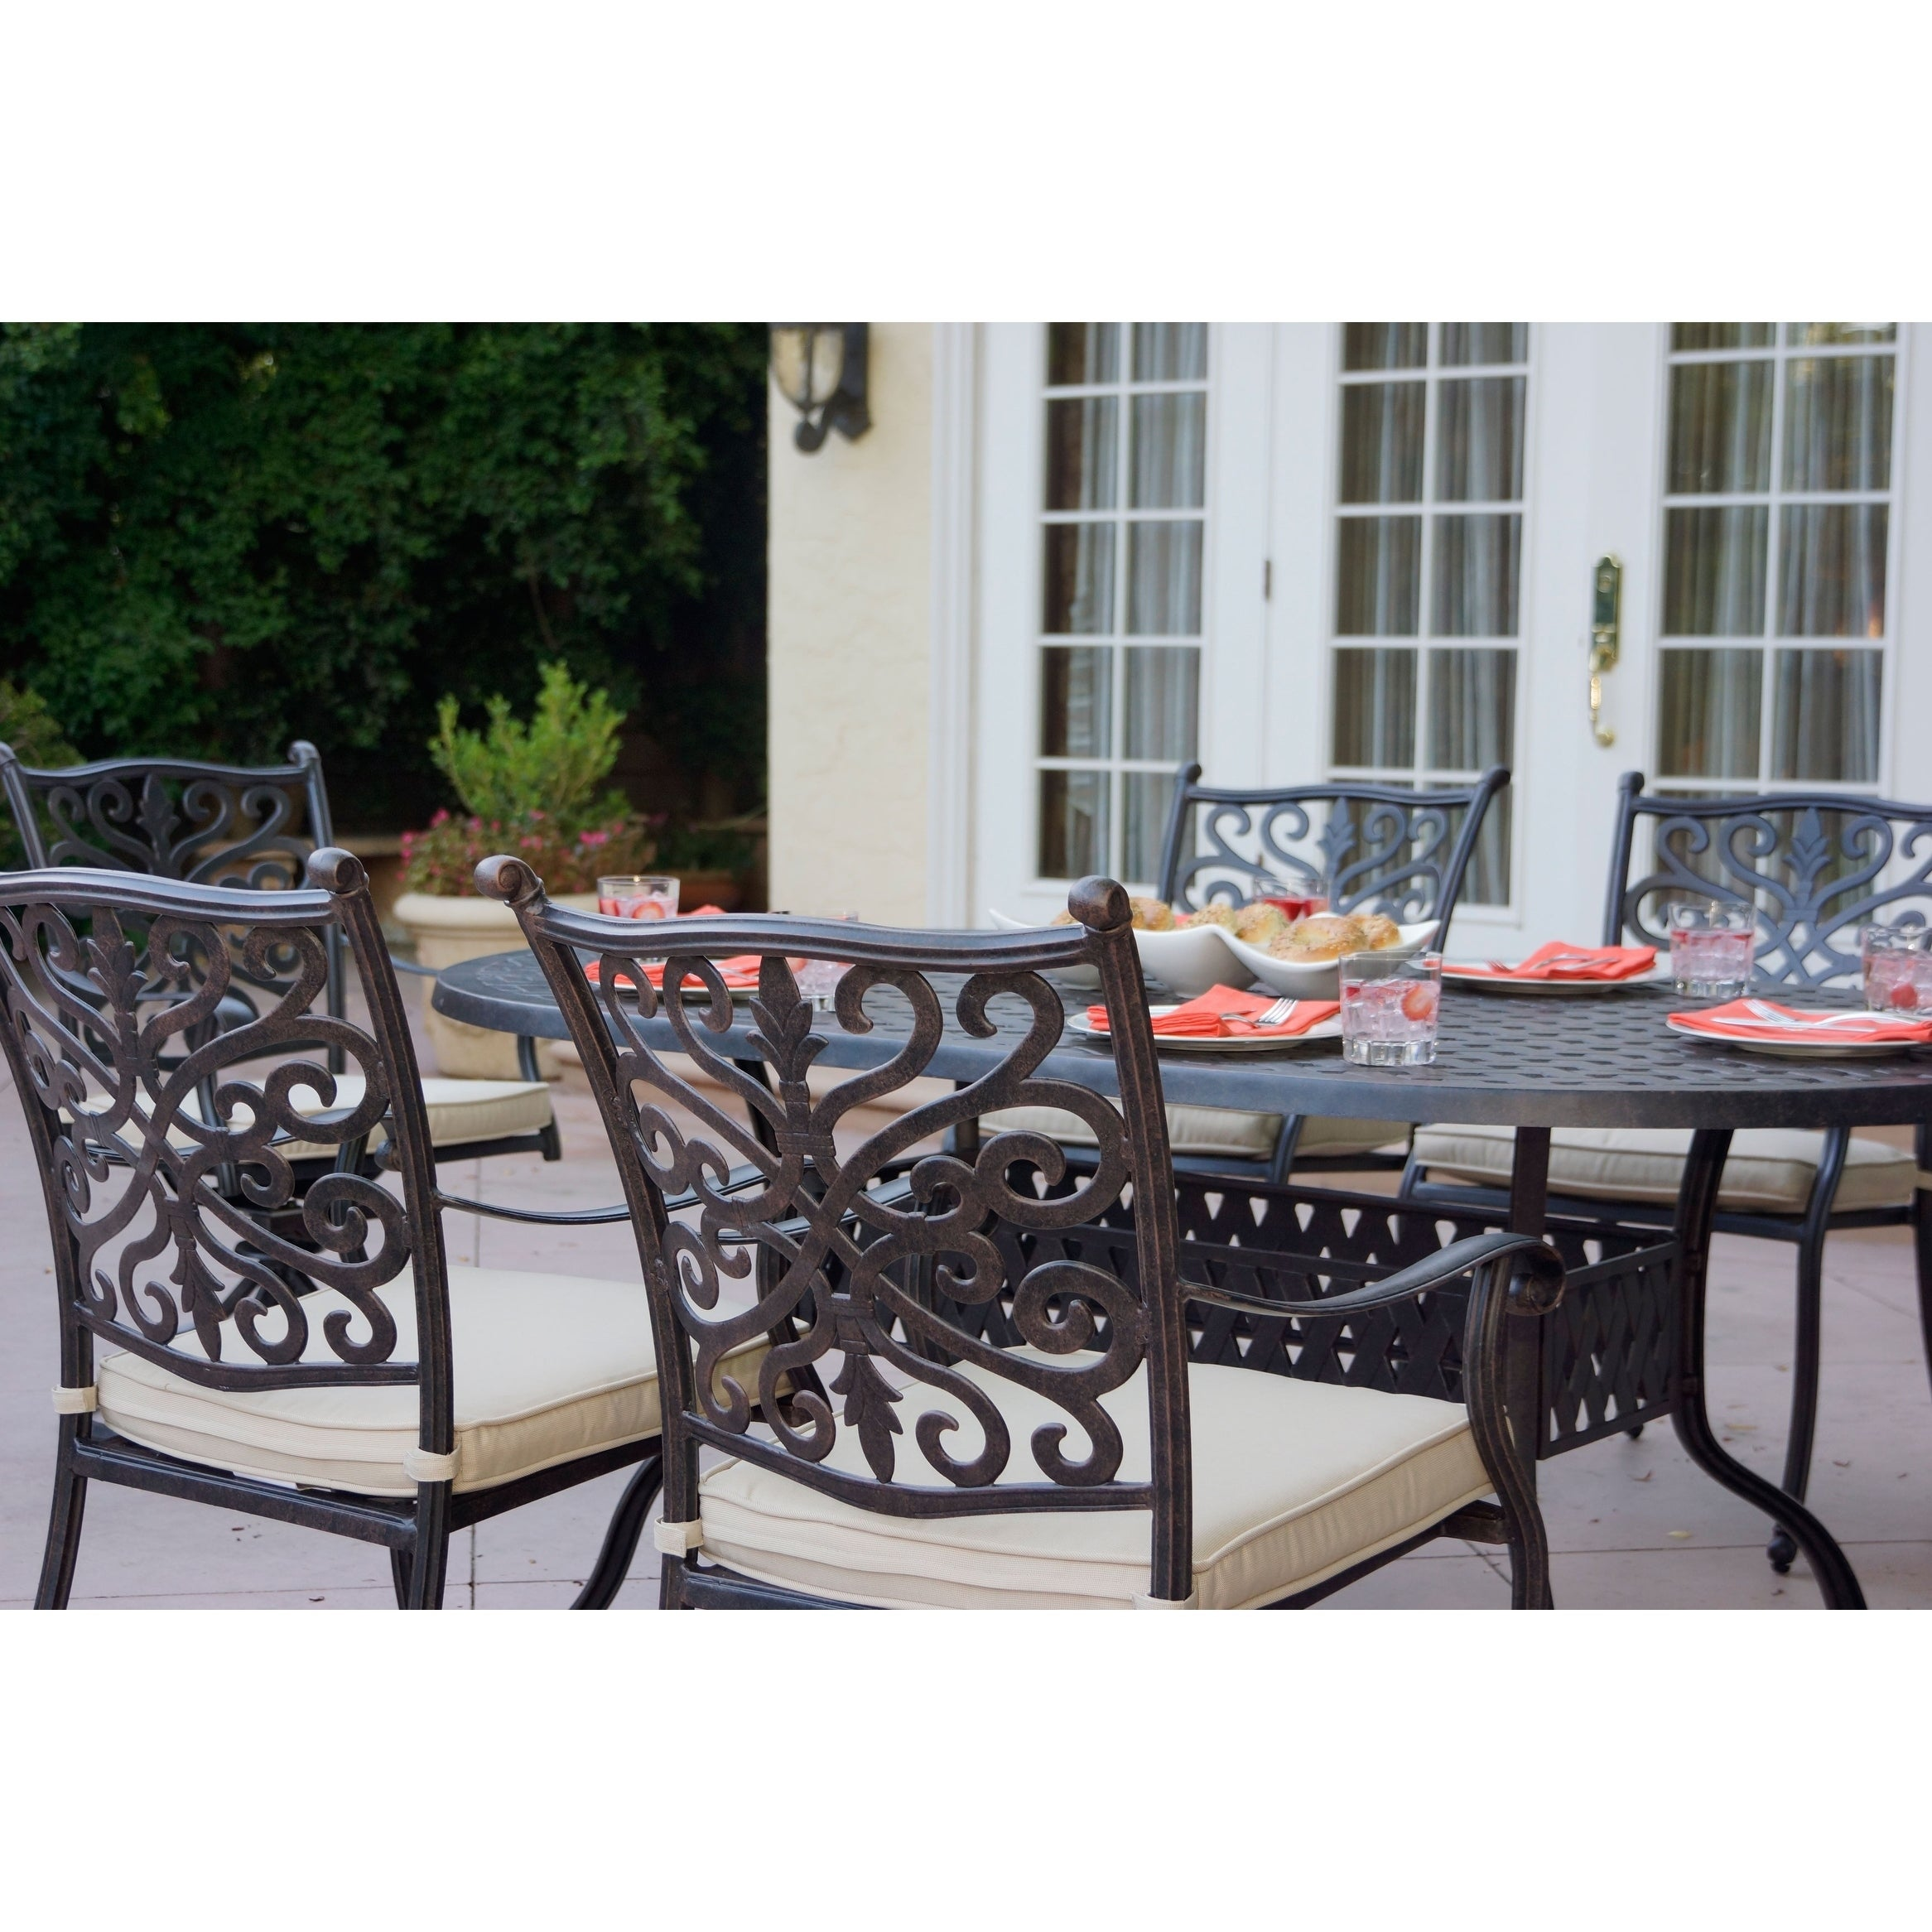 Shop Casablanca 7 Piece Dining Set,42 X 72 Inch Oval,Desert Bronze   On  Sale   Free Shipping Today   Overstock.com   17668805